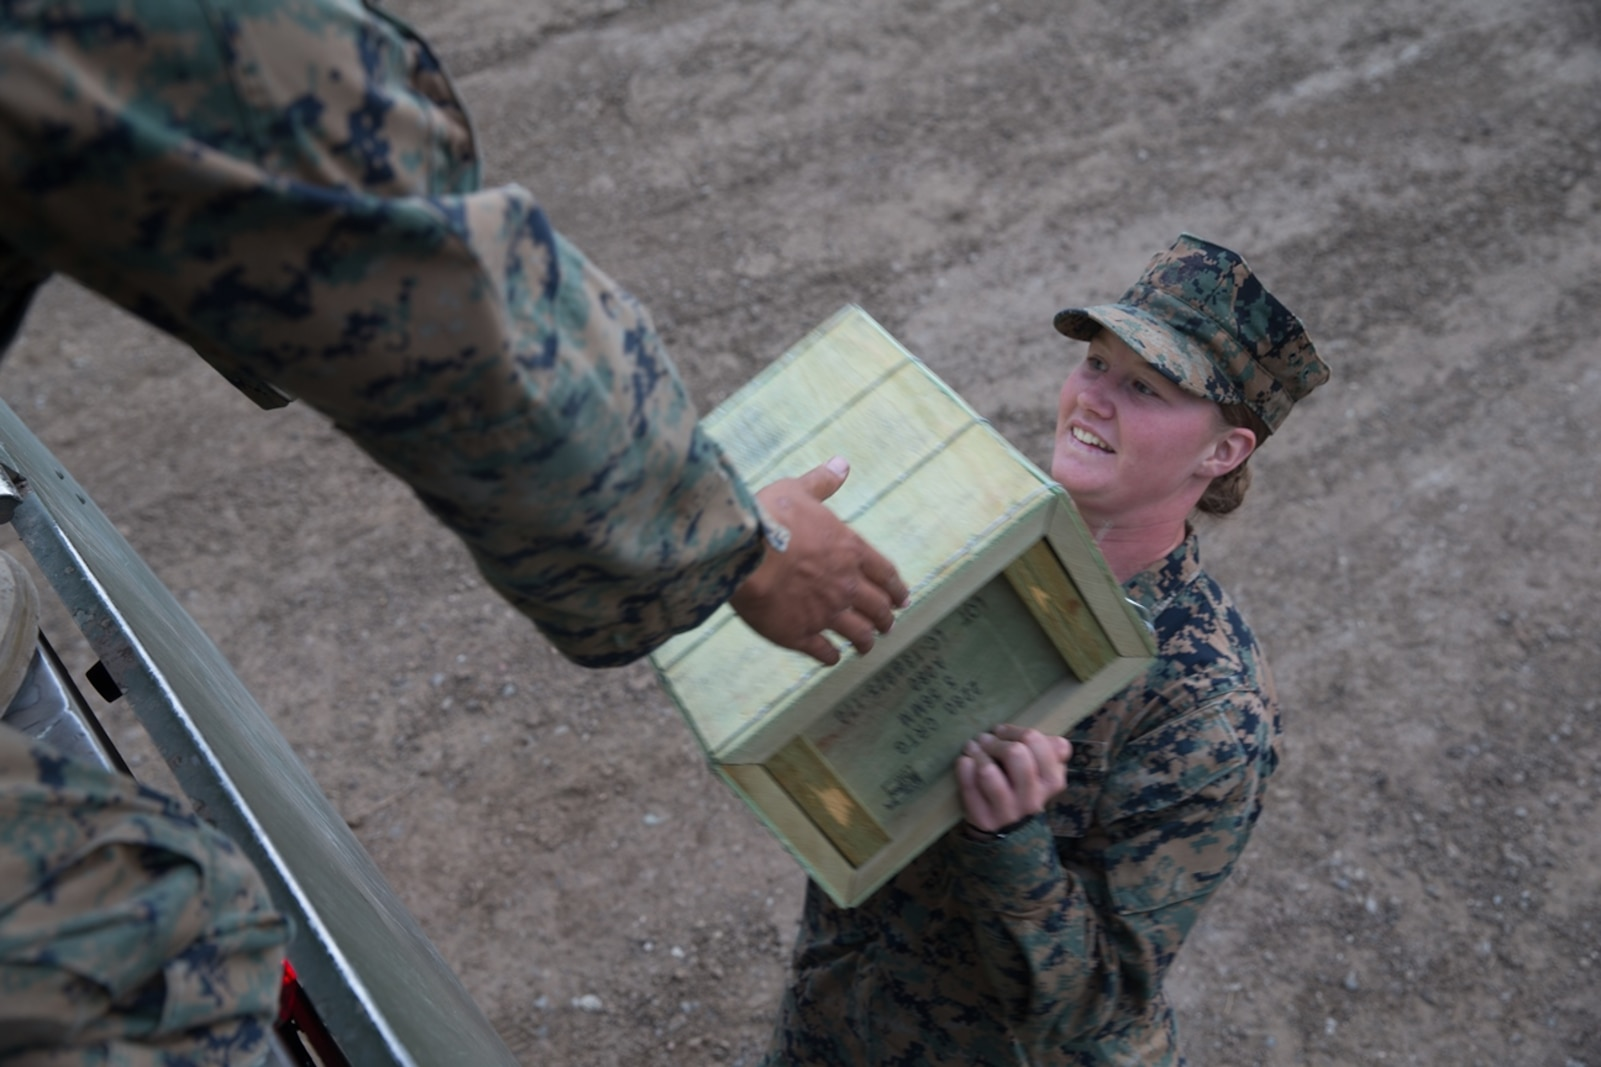 U.S. Marine Pfc. Olivia Rutherford, an ammunition technician with Combat Logistics Battalion 5, Combat Logistics Regiment 1, 1st Marine Logistics Group, carries a box of 5.56 blank ammunition during Mountain Training Exercise 4-17 at Marine Corps Mountain Warfare Training Center, August 3, 2017. Marines with CLB-5 participating in the Mountain Training Exercise received more than 9,000 rounds of blank ammunition. (U.S. Marine Corps photo by Lance Cpl. Timothy Shoemaker)